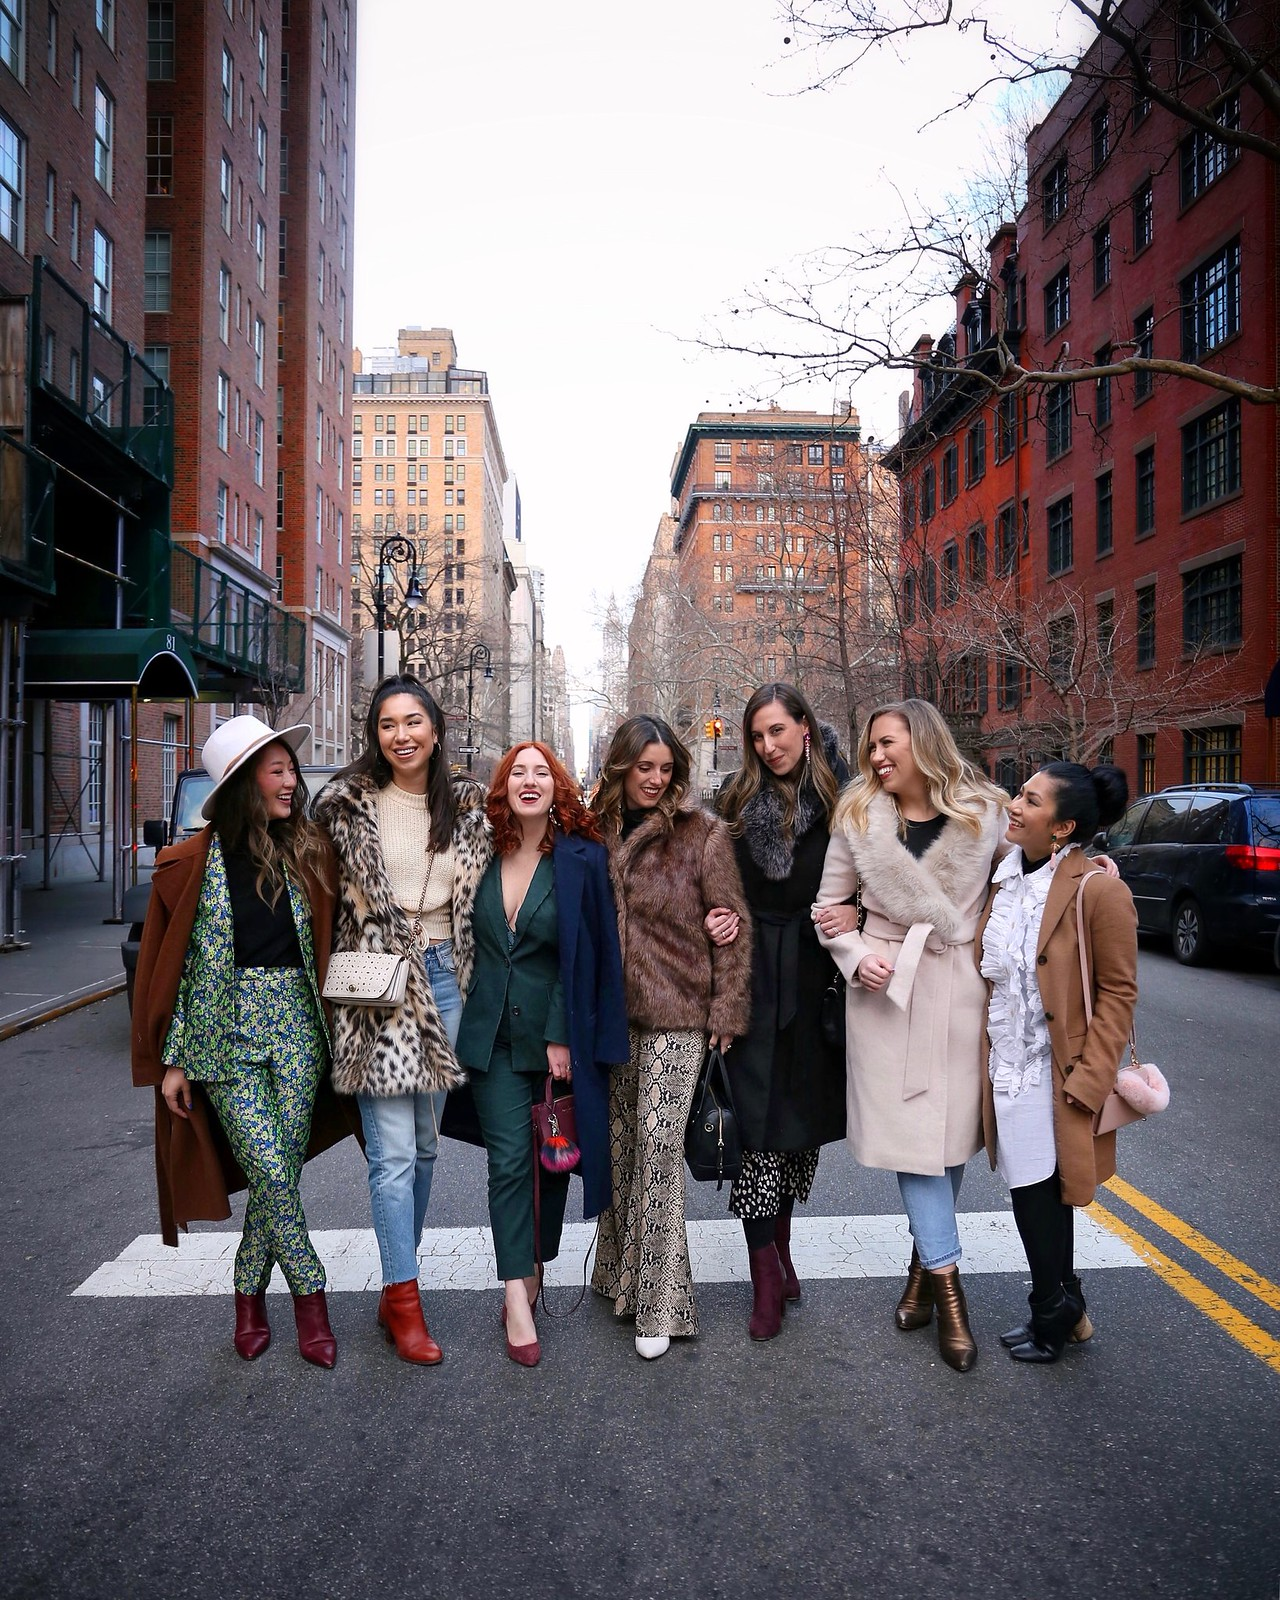 New York City NYC Street Style Blogger Besties Friends Fashion